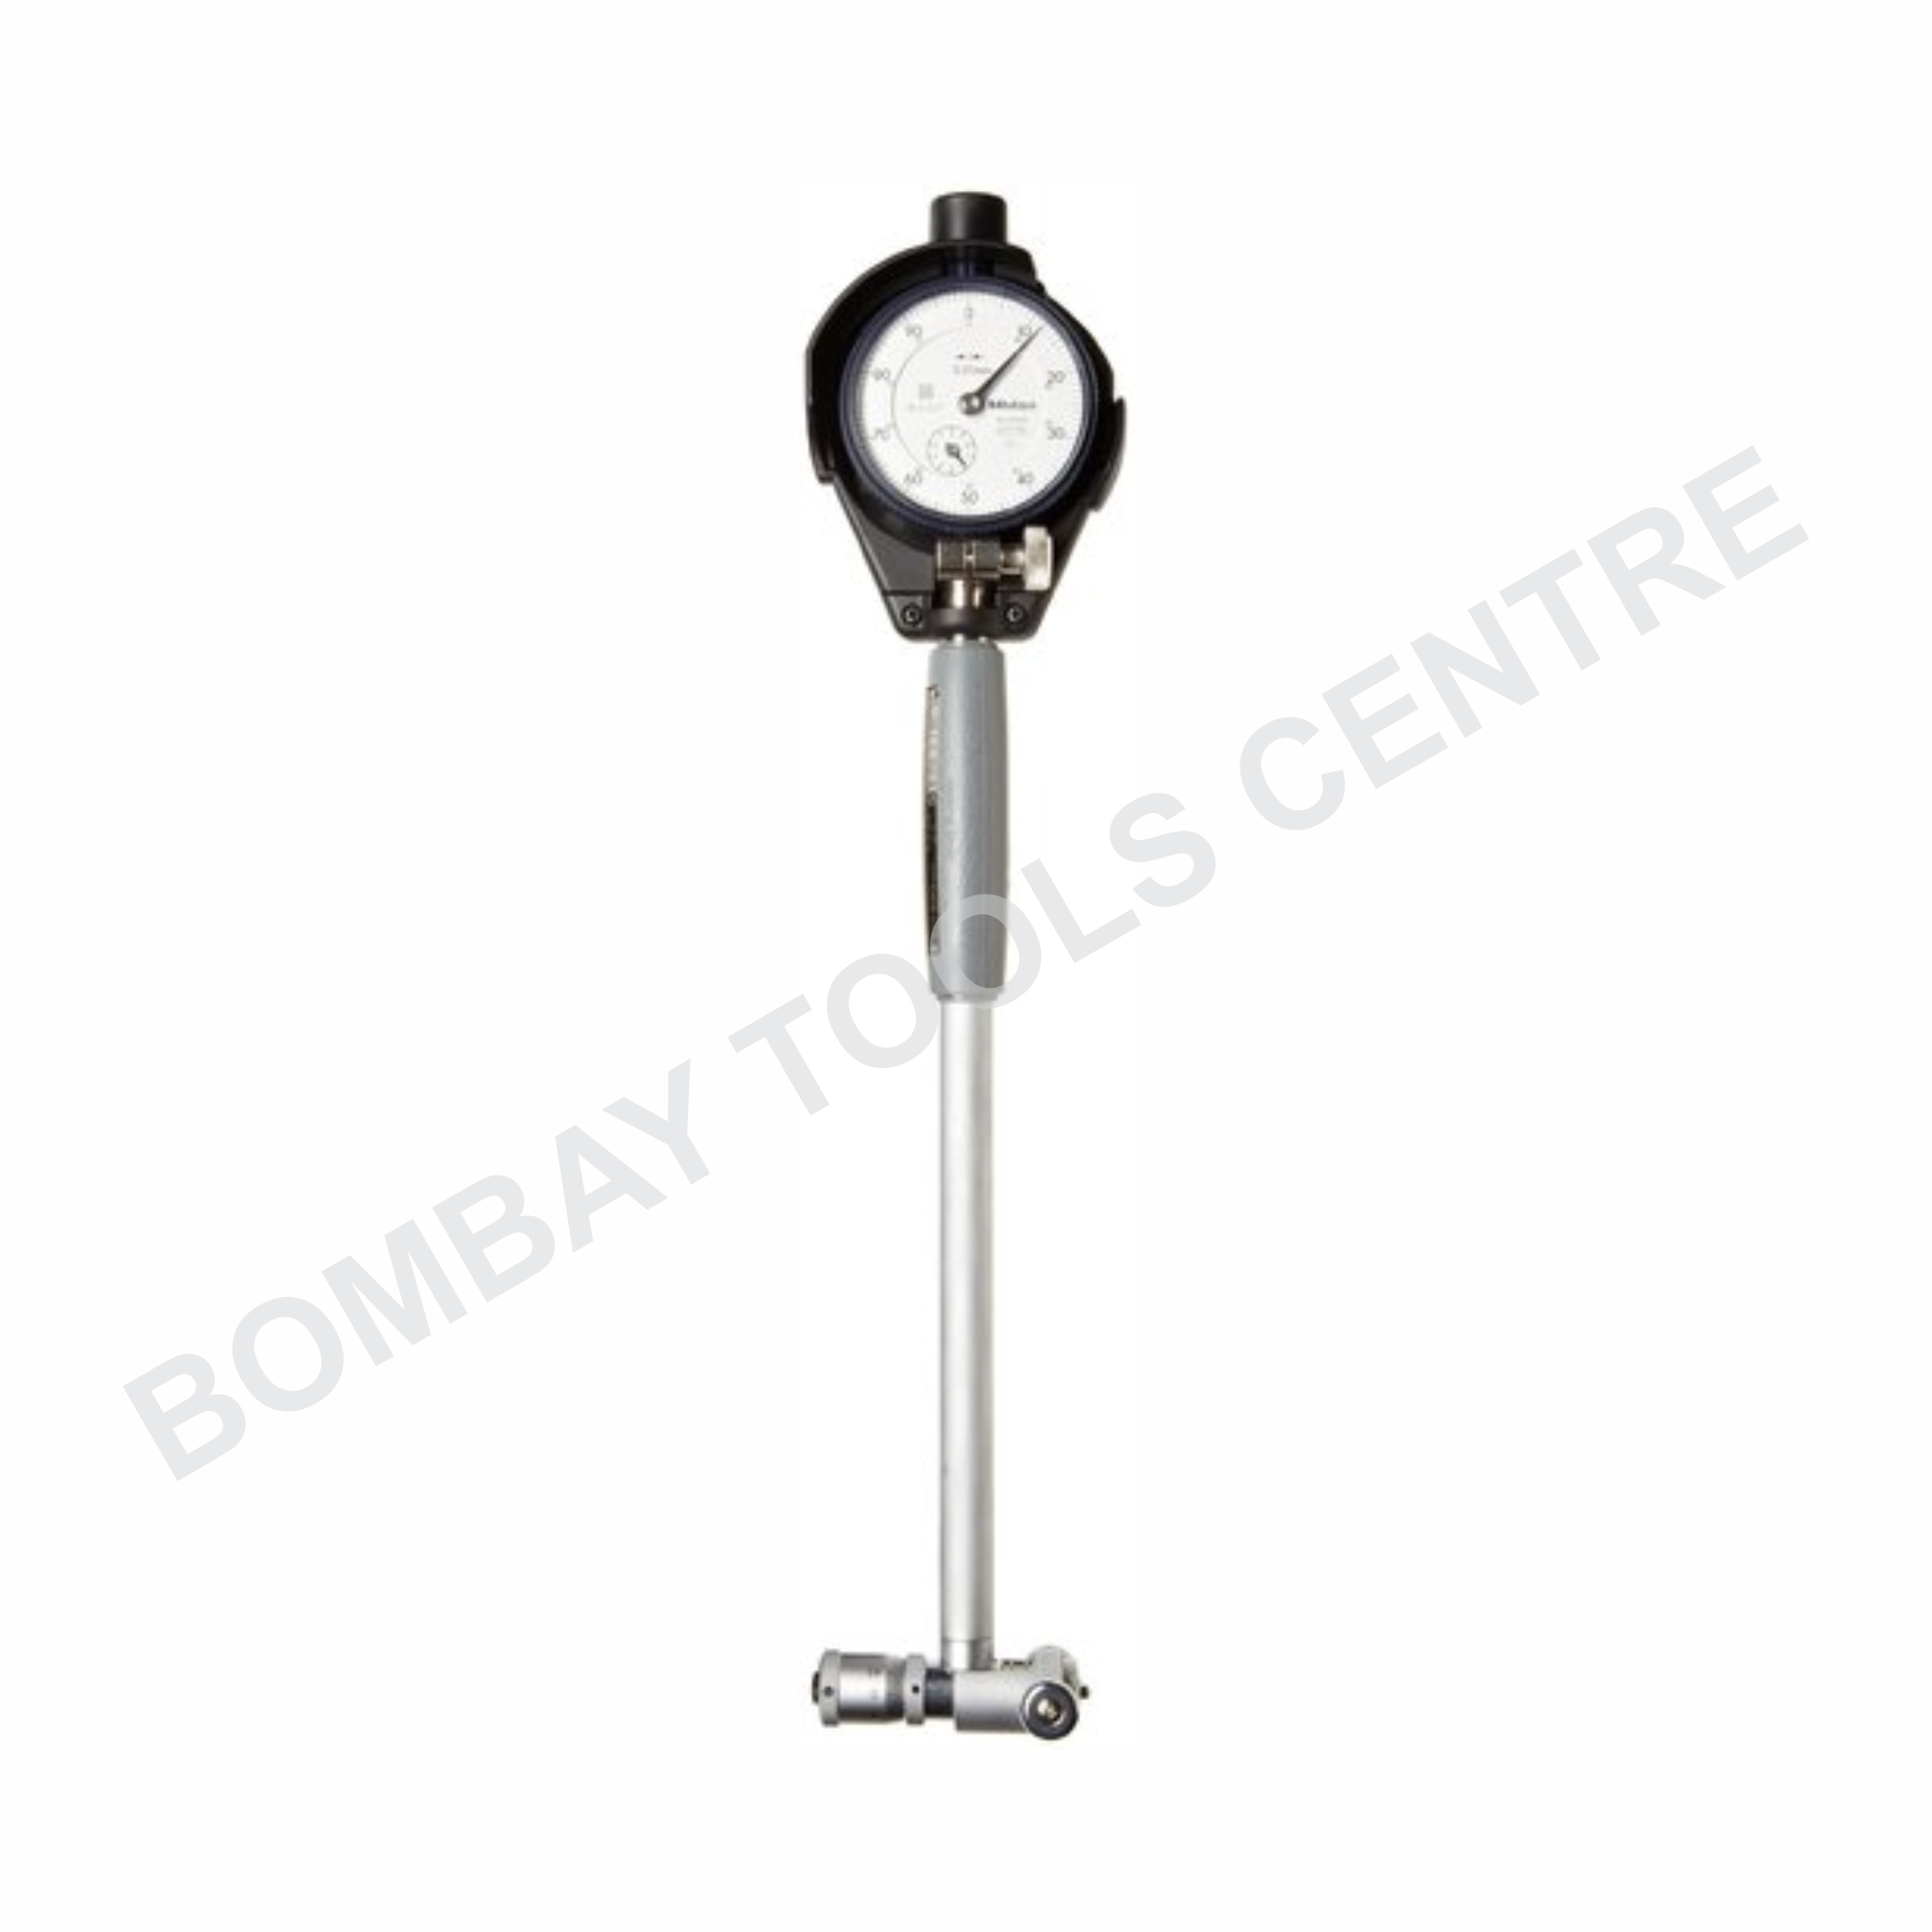 Bore Gauge with Micrometer head